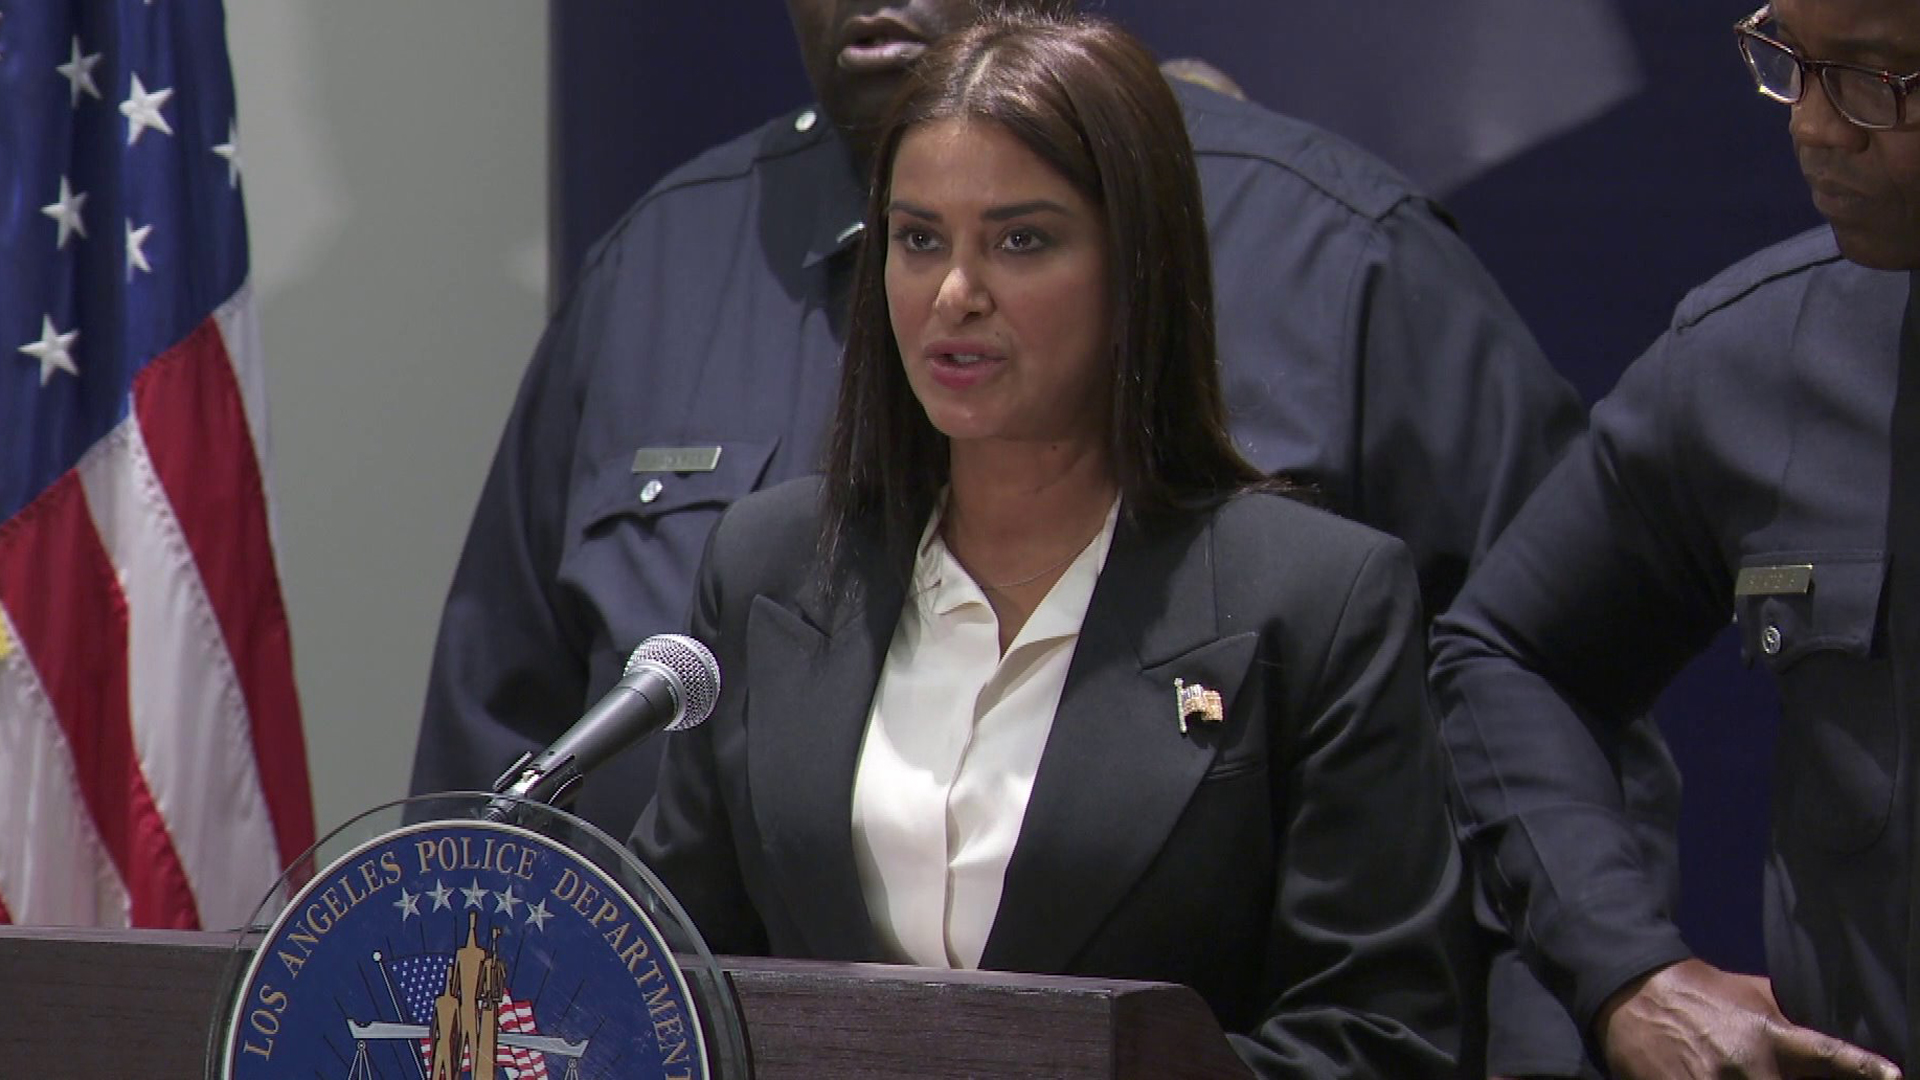 Los Angeles Police Capt. Lillian Carranza speaks during a press conference on Oct. 2, 2018. (Credit: KTLA)